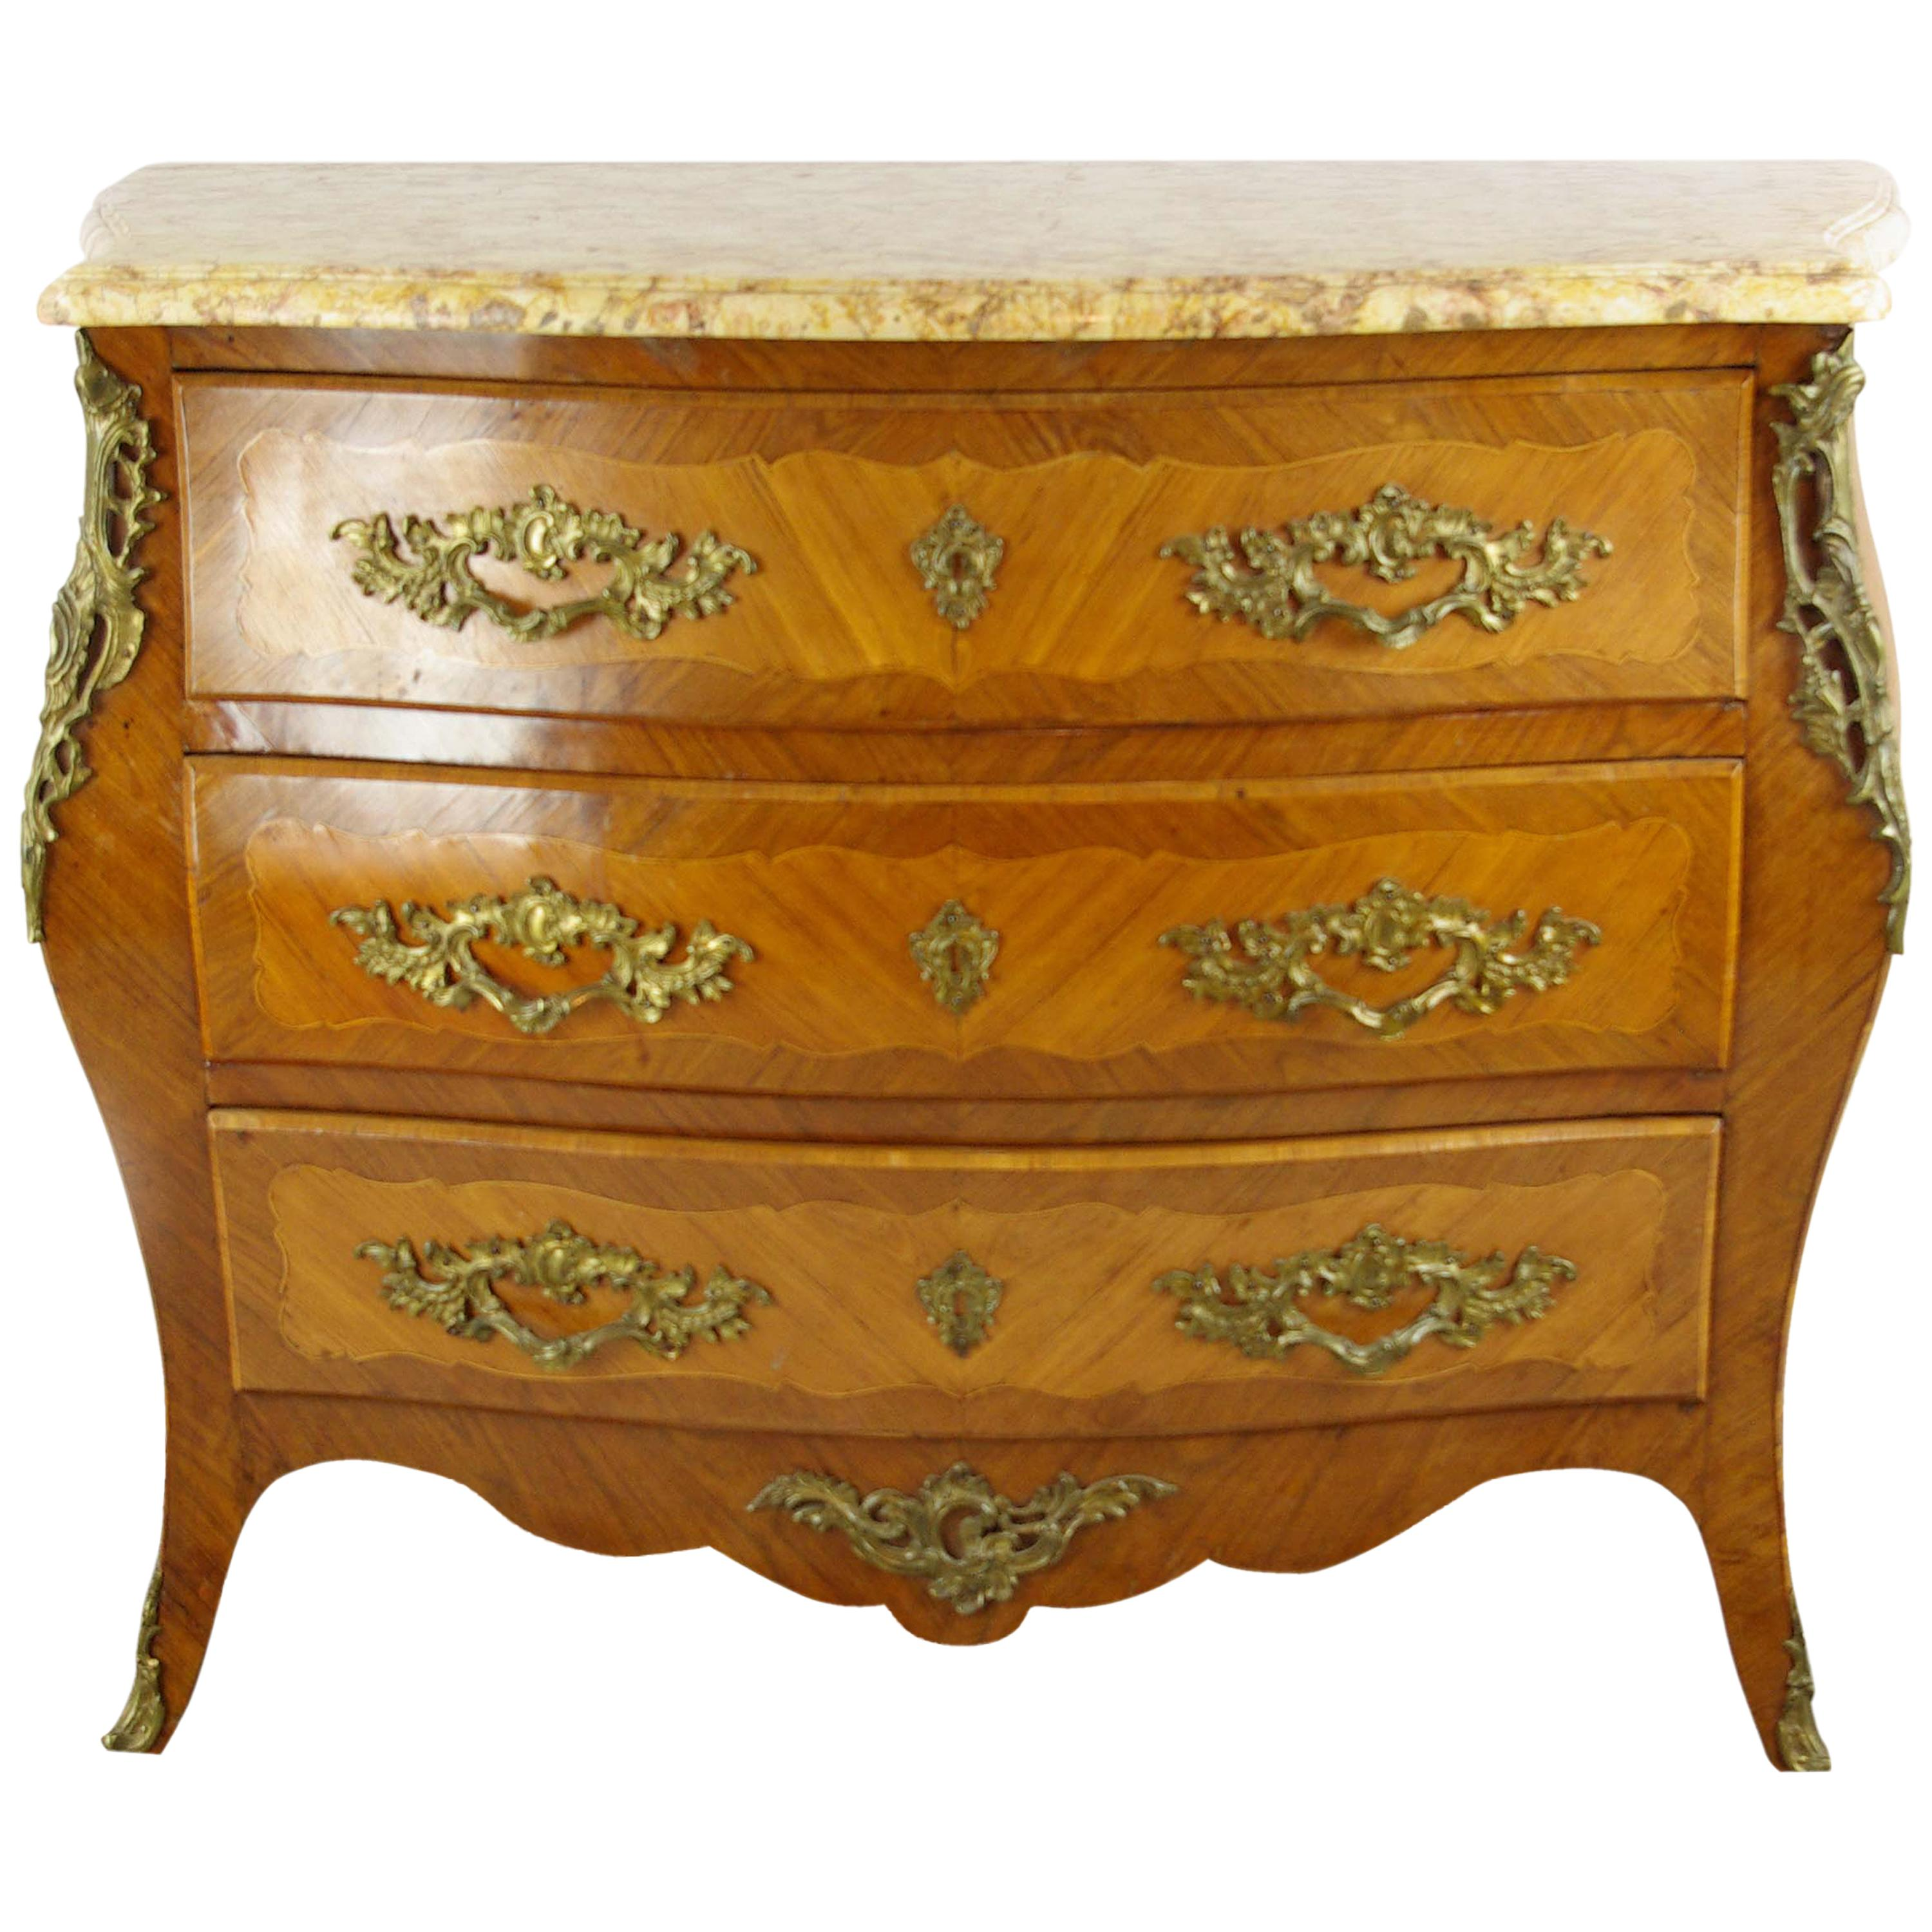 Commodes Louis 15 Marble Top Commode Louis Xv Style Bombe Commode France 1930 B1142